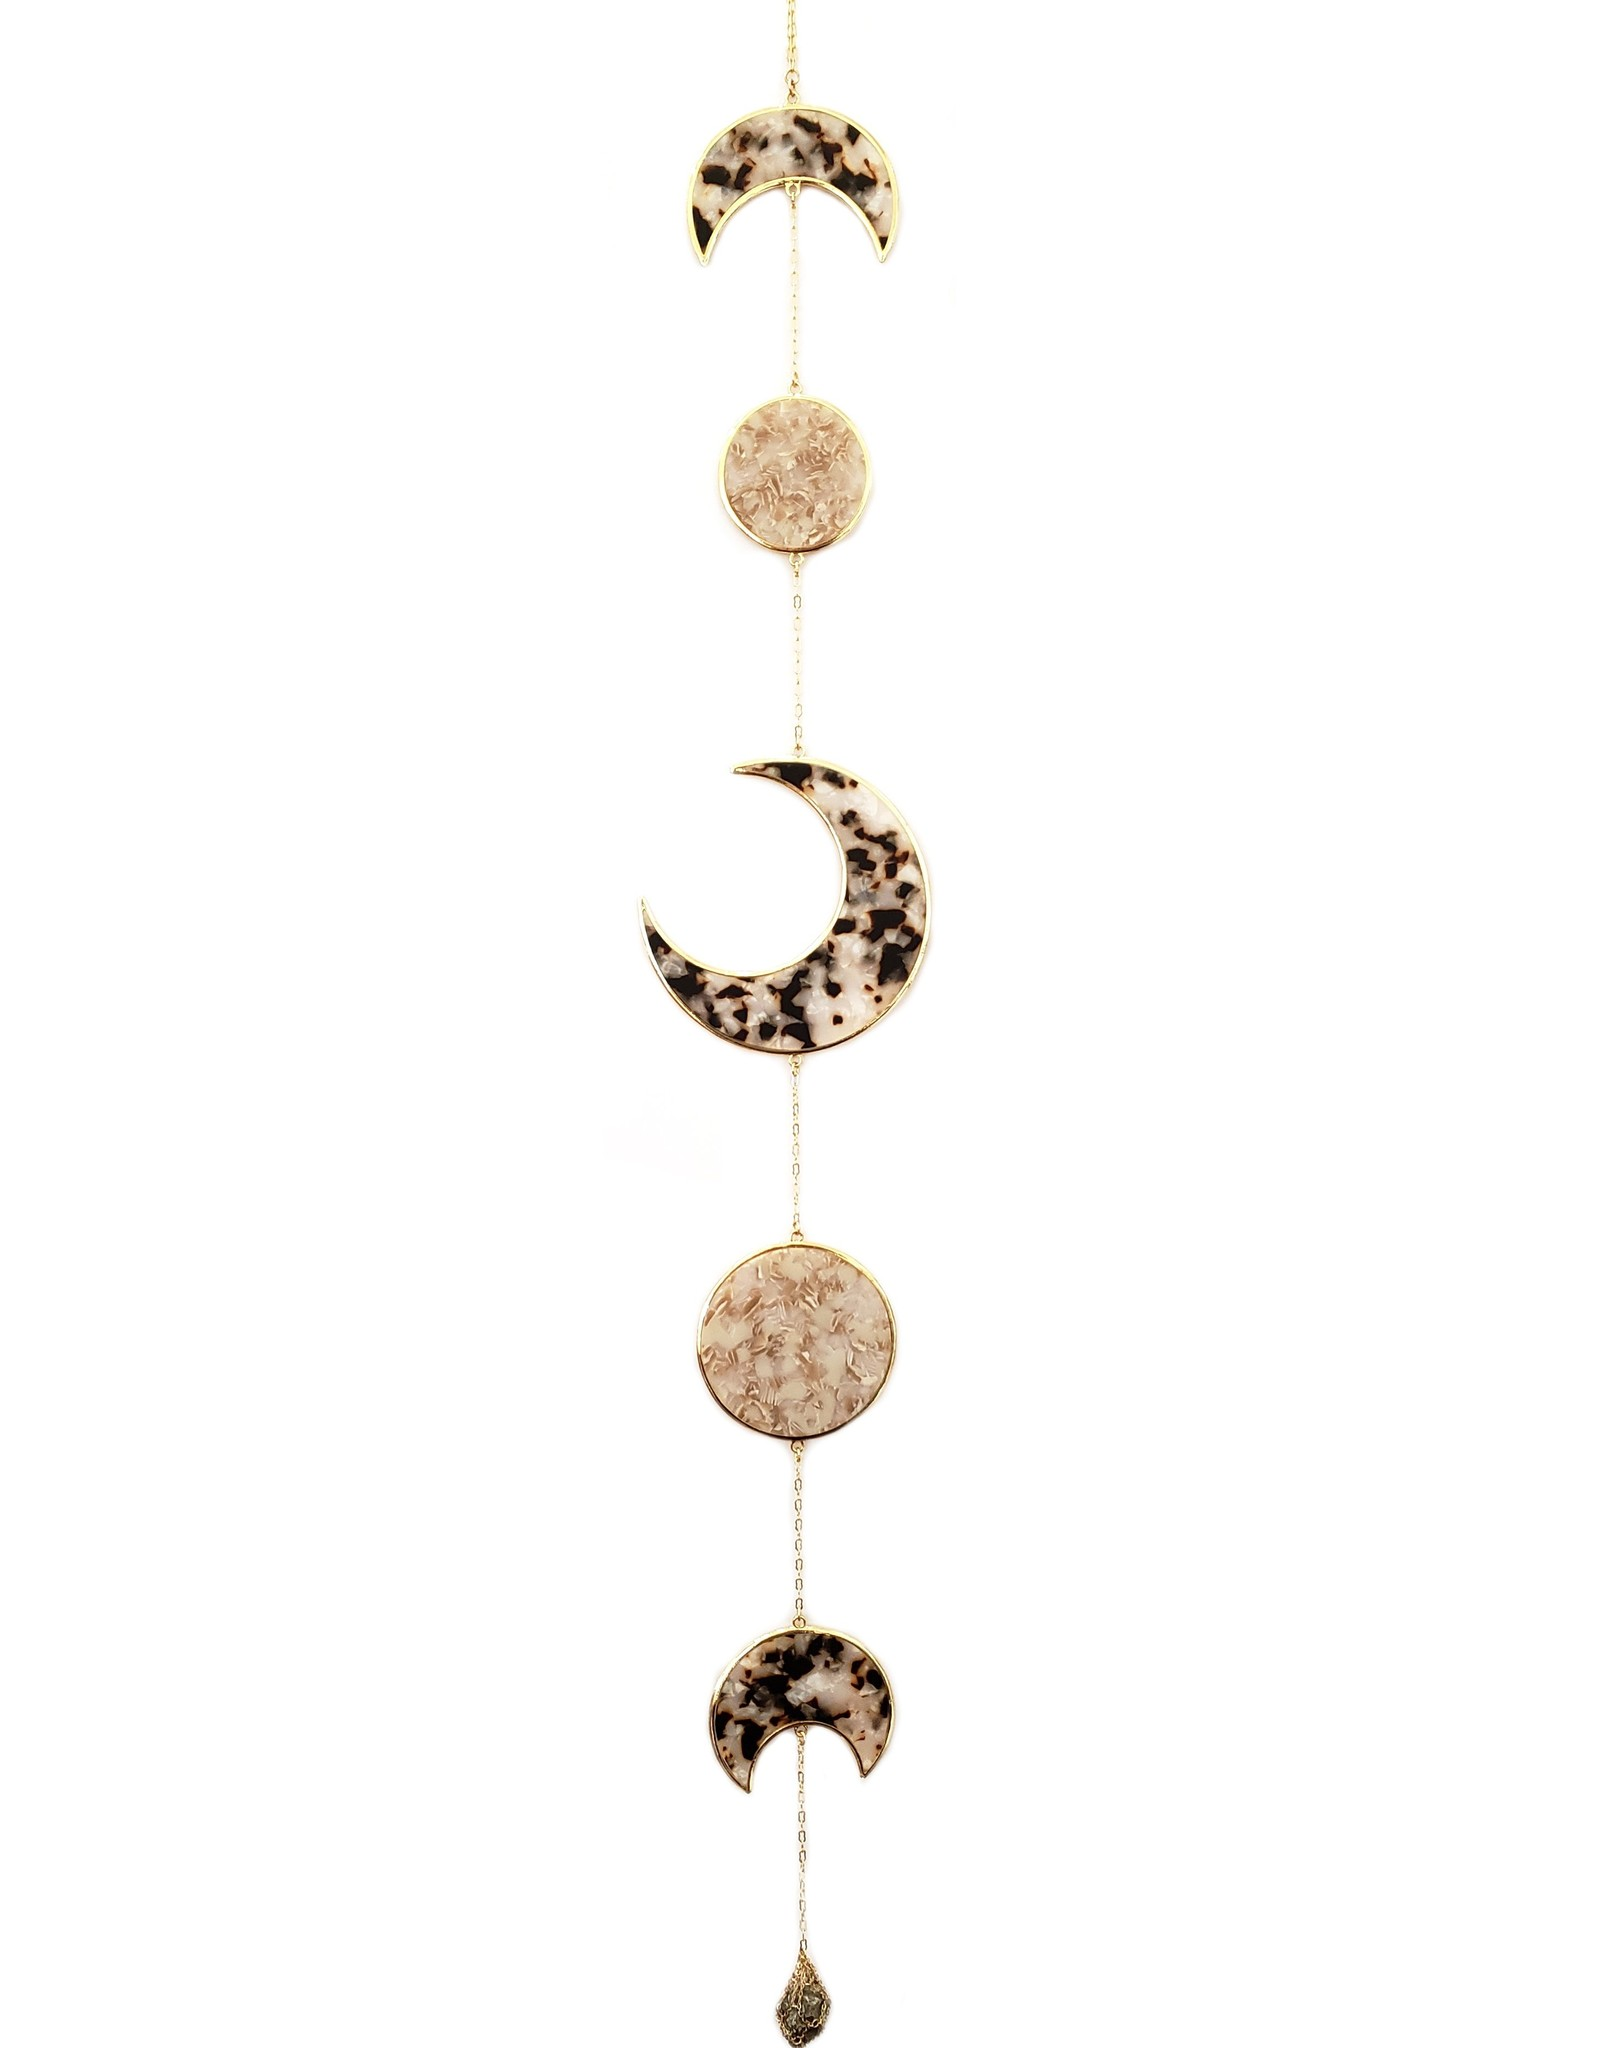 Ariana Ost Resin Moon Phase Wall Hanging